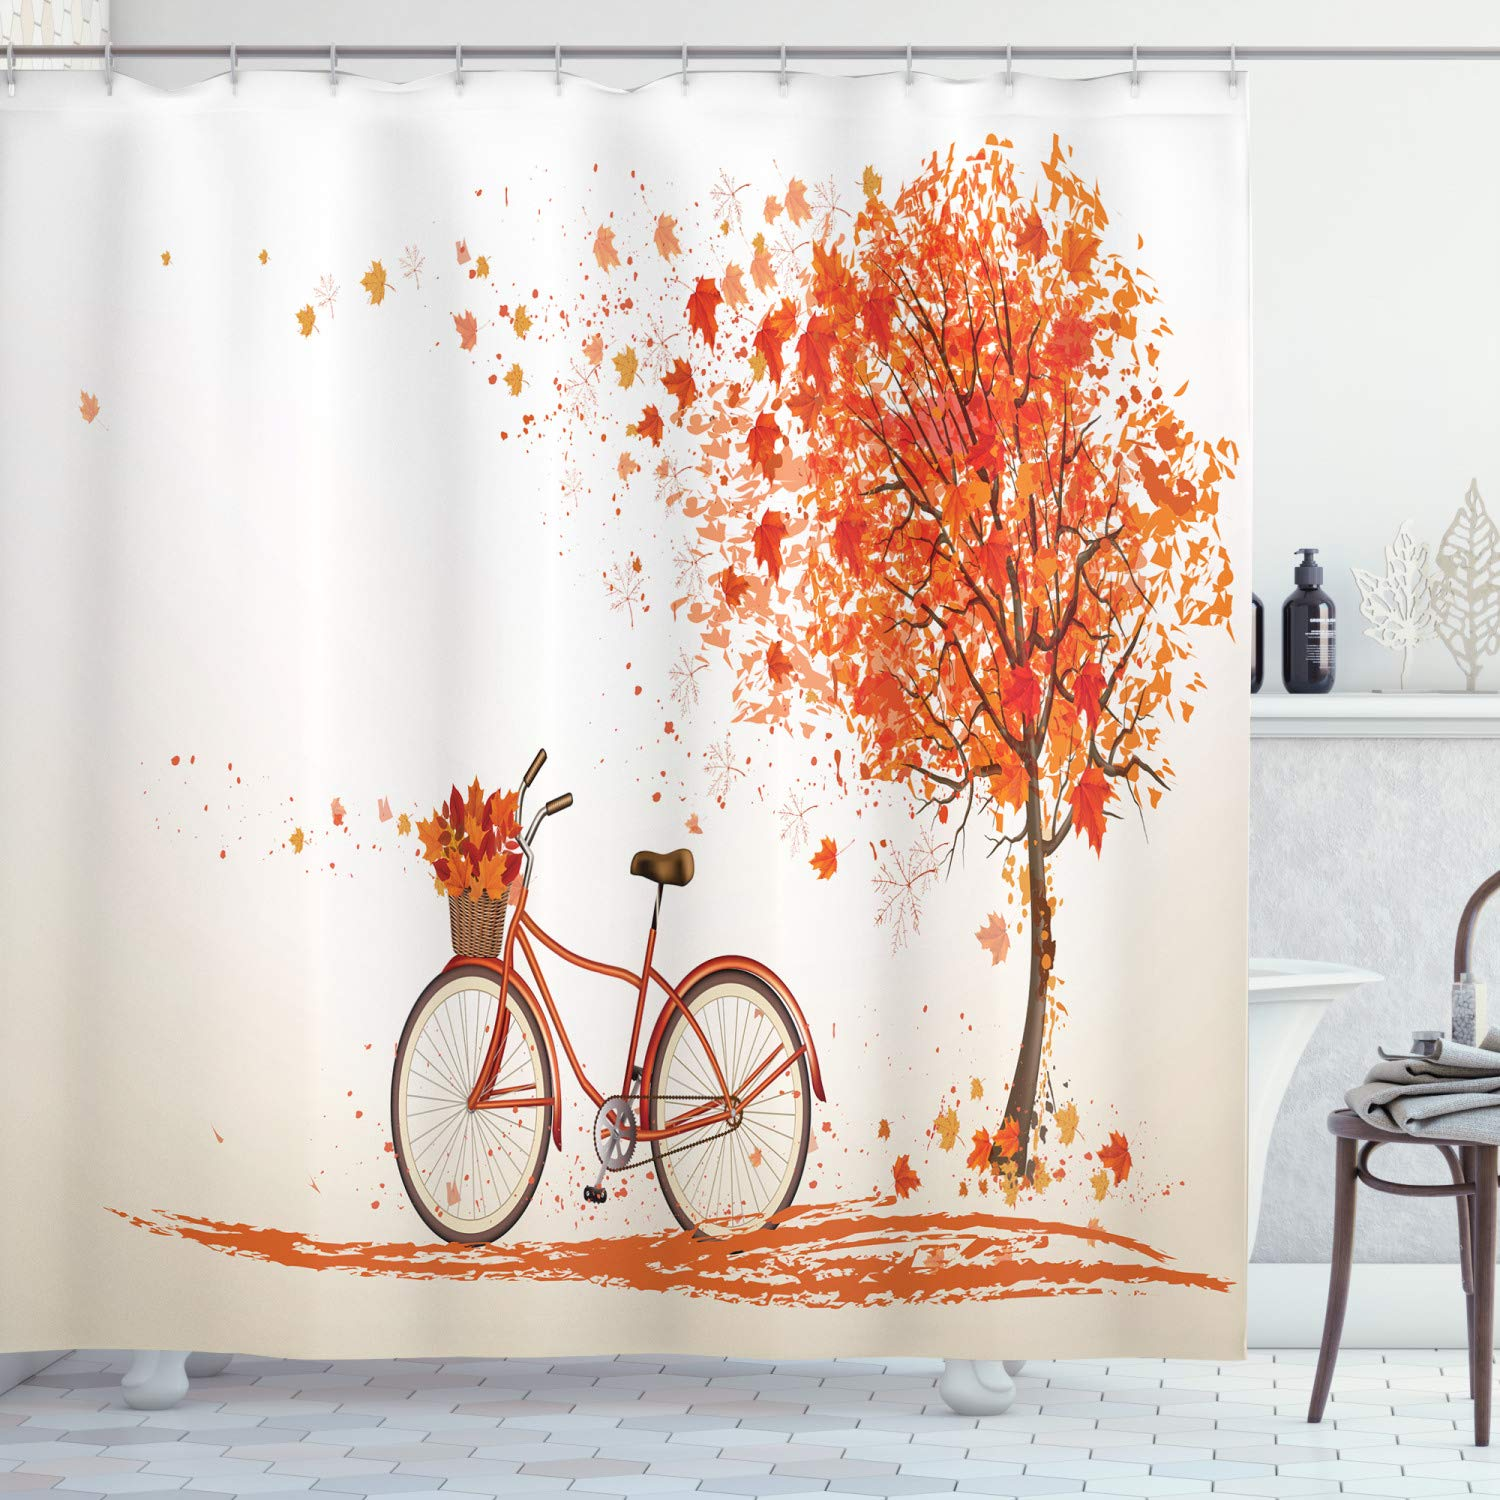 """Ambesonne Bicycle Shower Curtain, Autumn Tree with Aged Old Bike and Fall Tree November Day Fall Season Park Nature Theme, Cloth Fabric Bathroom Decor Set with Hooks, 70"""" Long, Orange"""